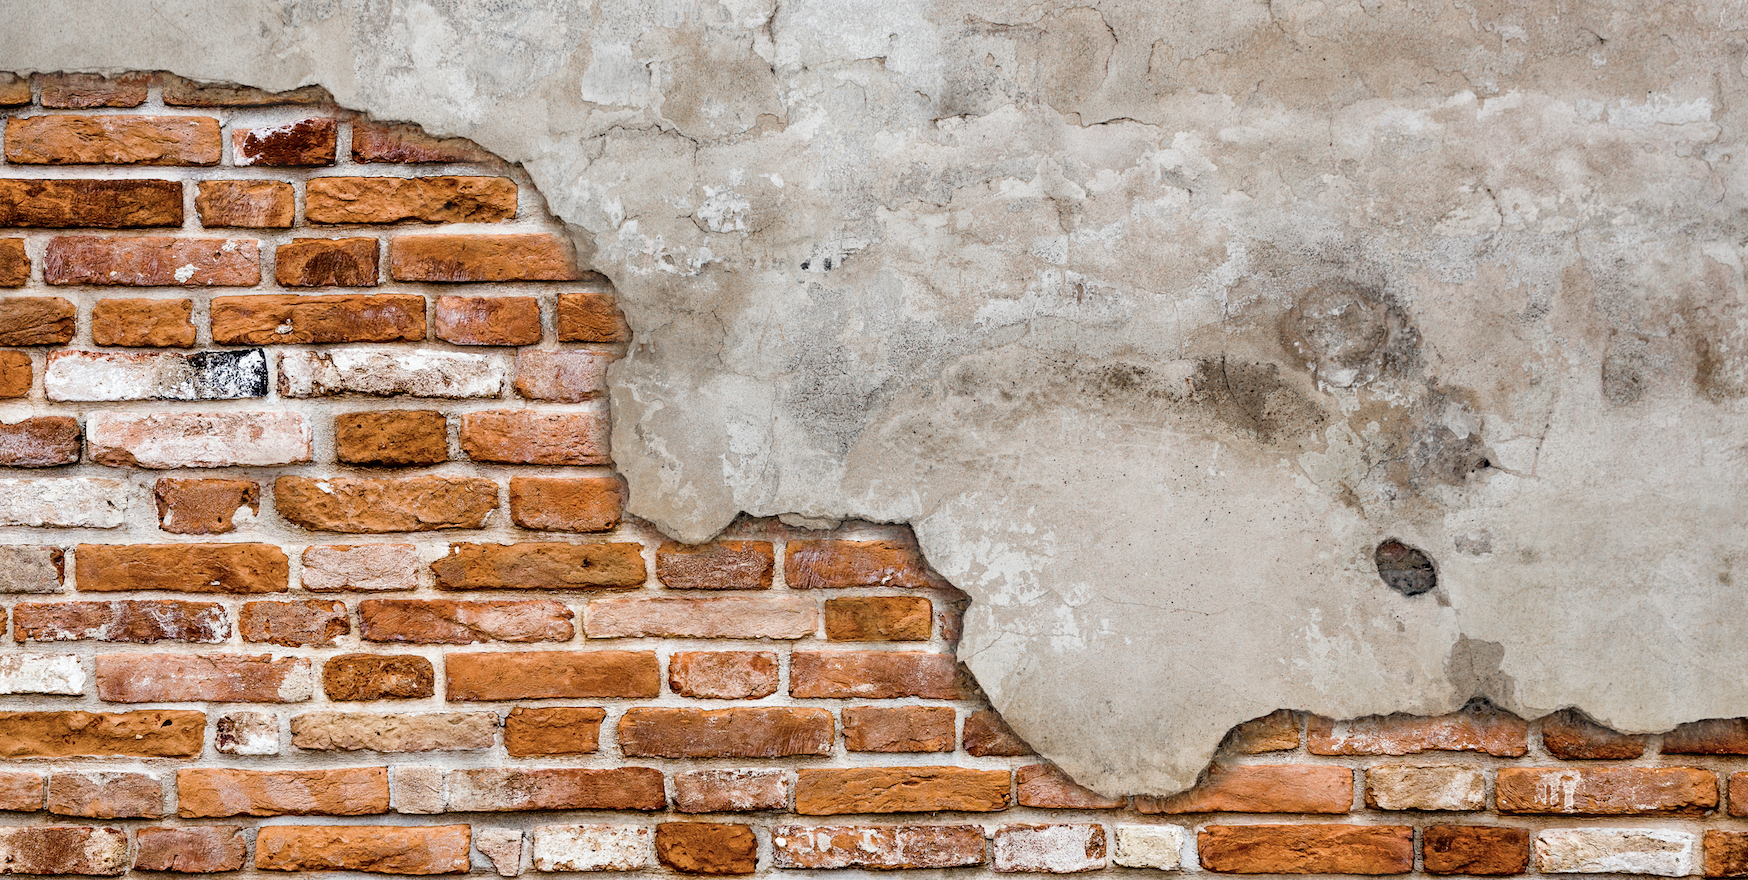 An exposed brick wall on an old building.